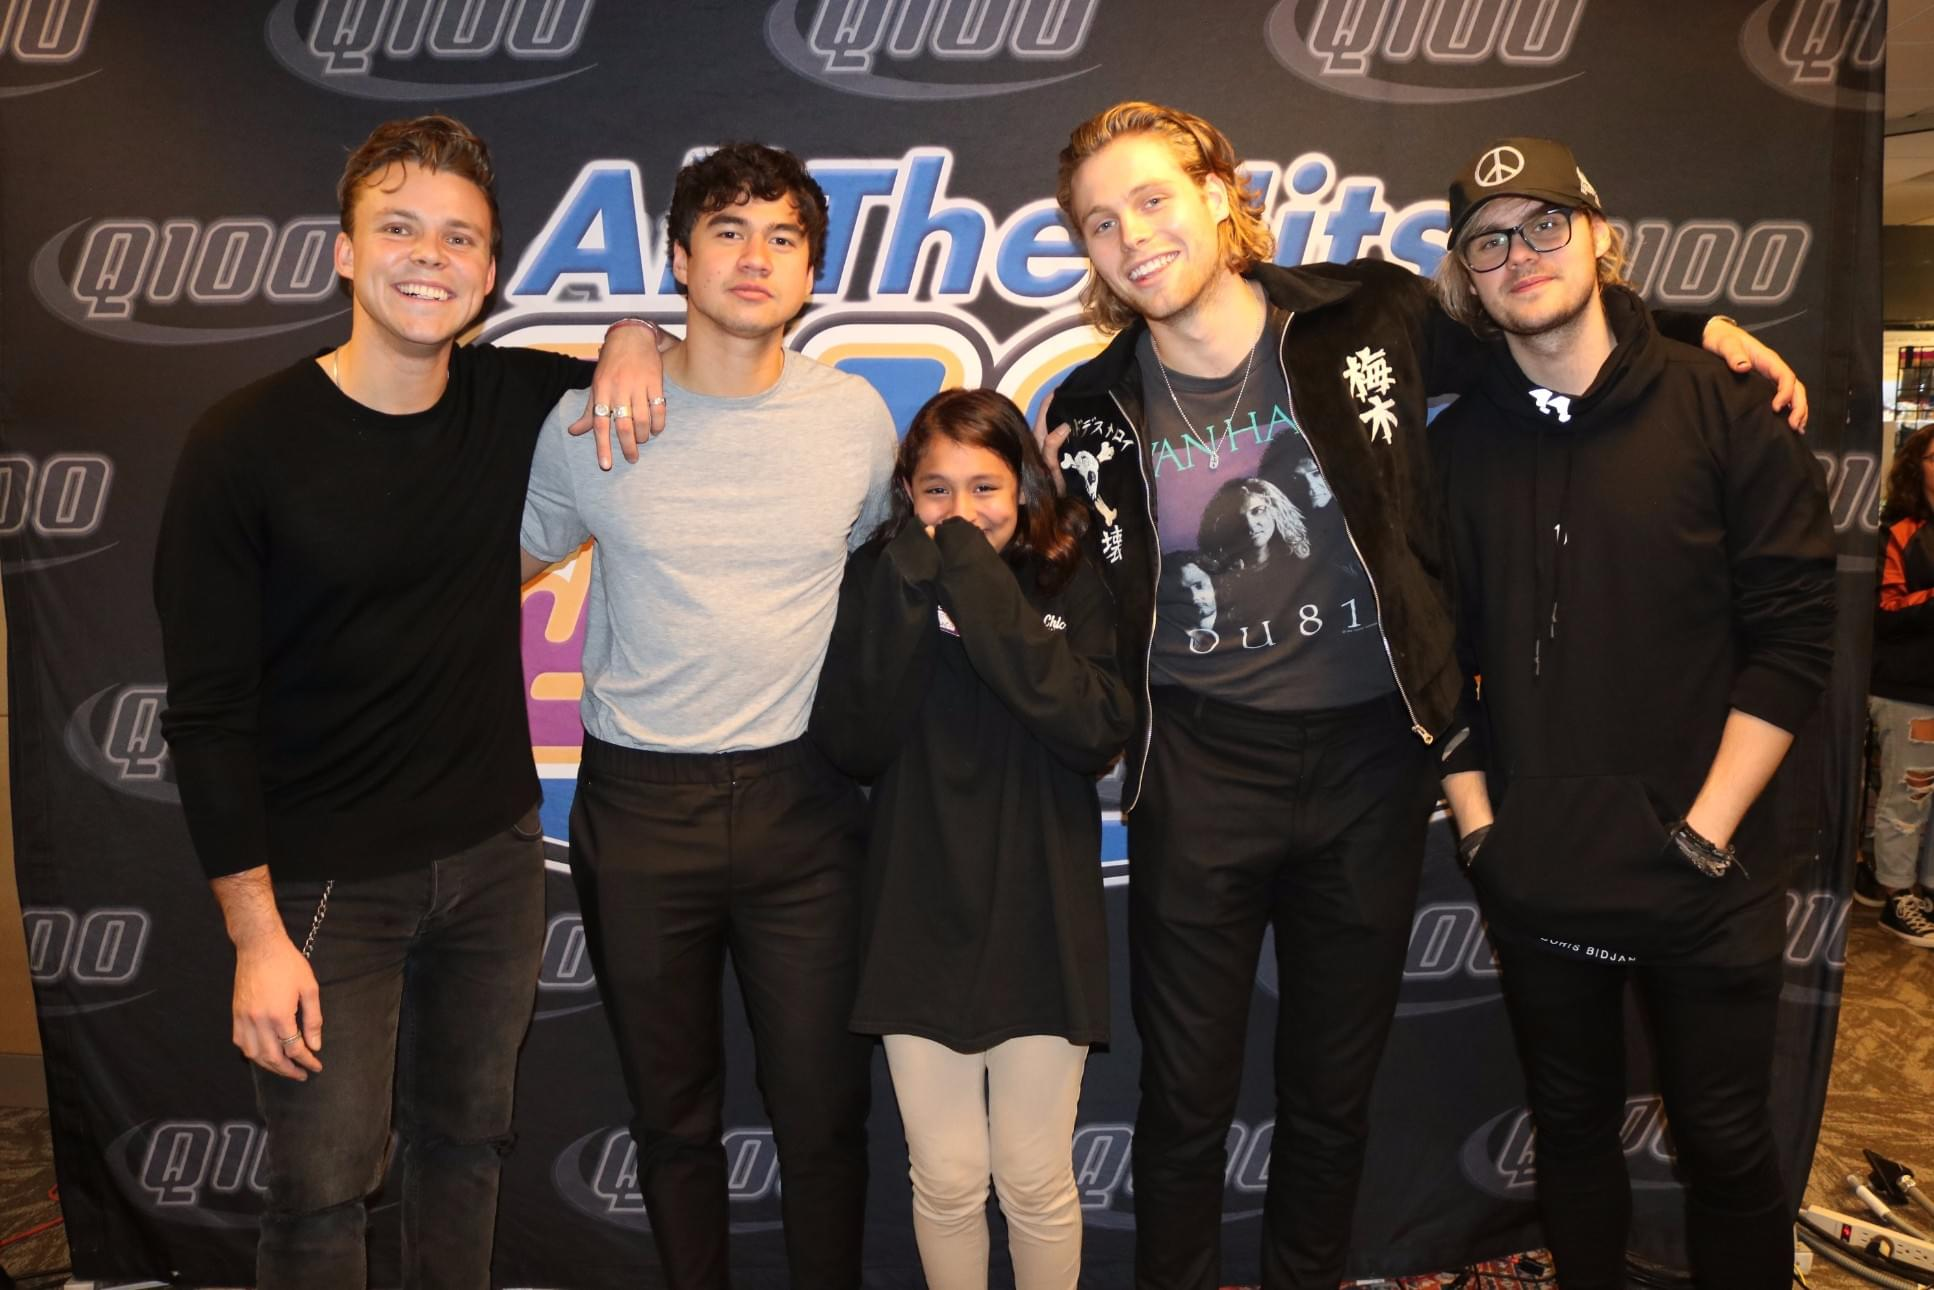 5 seconds of summer meet greet photos q100 wwwq fm posted on march 7 2018 m4hsunfo